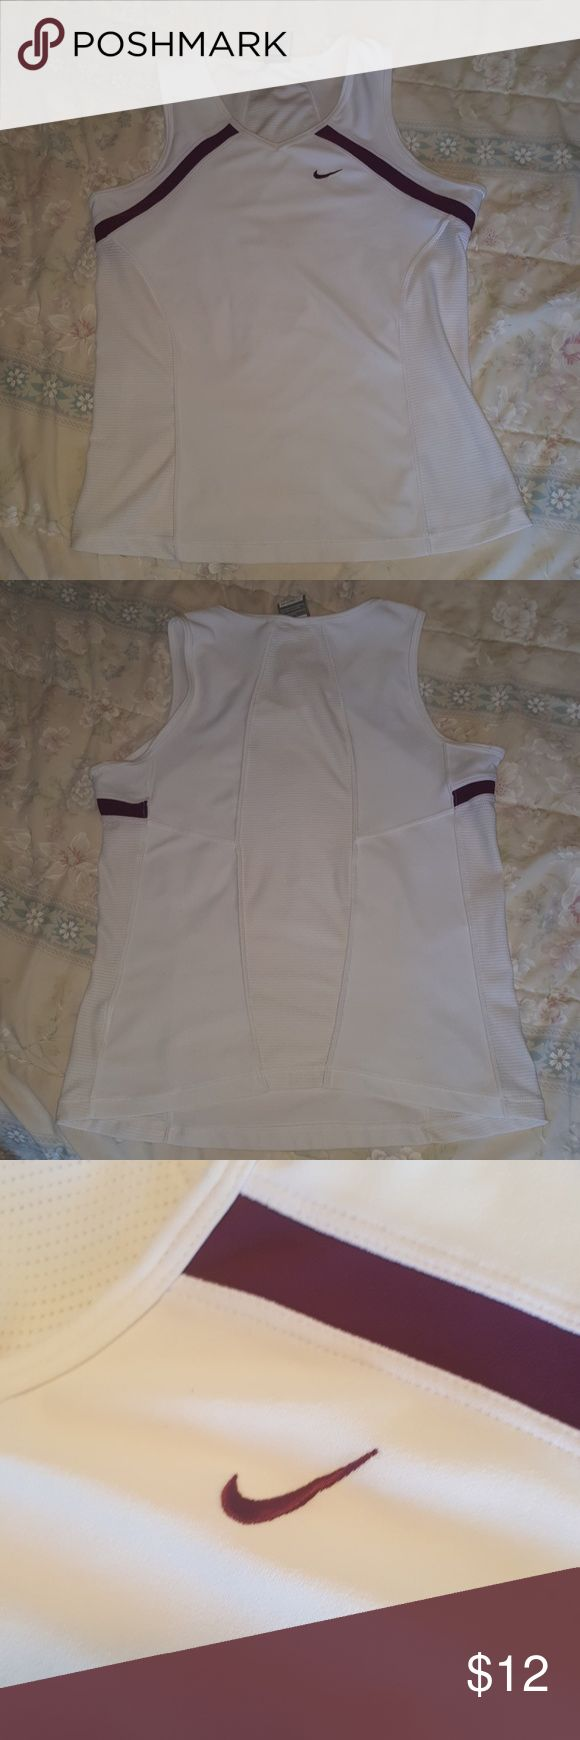 Nike tank top! It is a fitted medium nike tanktop. It would be go for working out or just wearing around. Its stretchy and comfortable and needs a good home! There is a very small light stain on the front of the shirt that is shown in the last picture, you can hardly see it unless you look really hard, but i just thought i would inform you. No ones liles getting unwanted suprises. Price is aleays negotiable with me. And if you have any questions i would be happy to anwser them. Nike Tops…